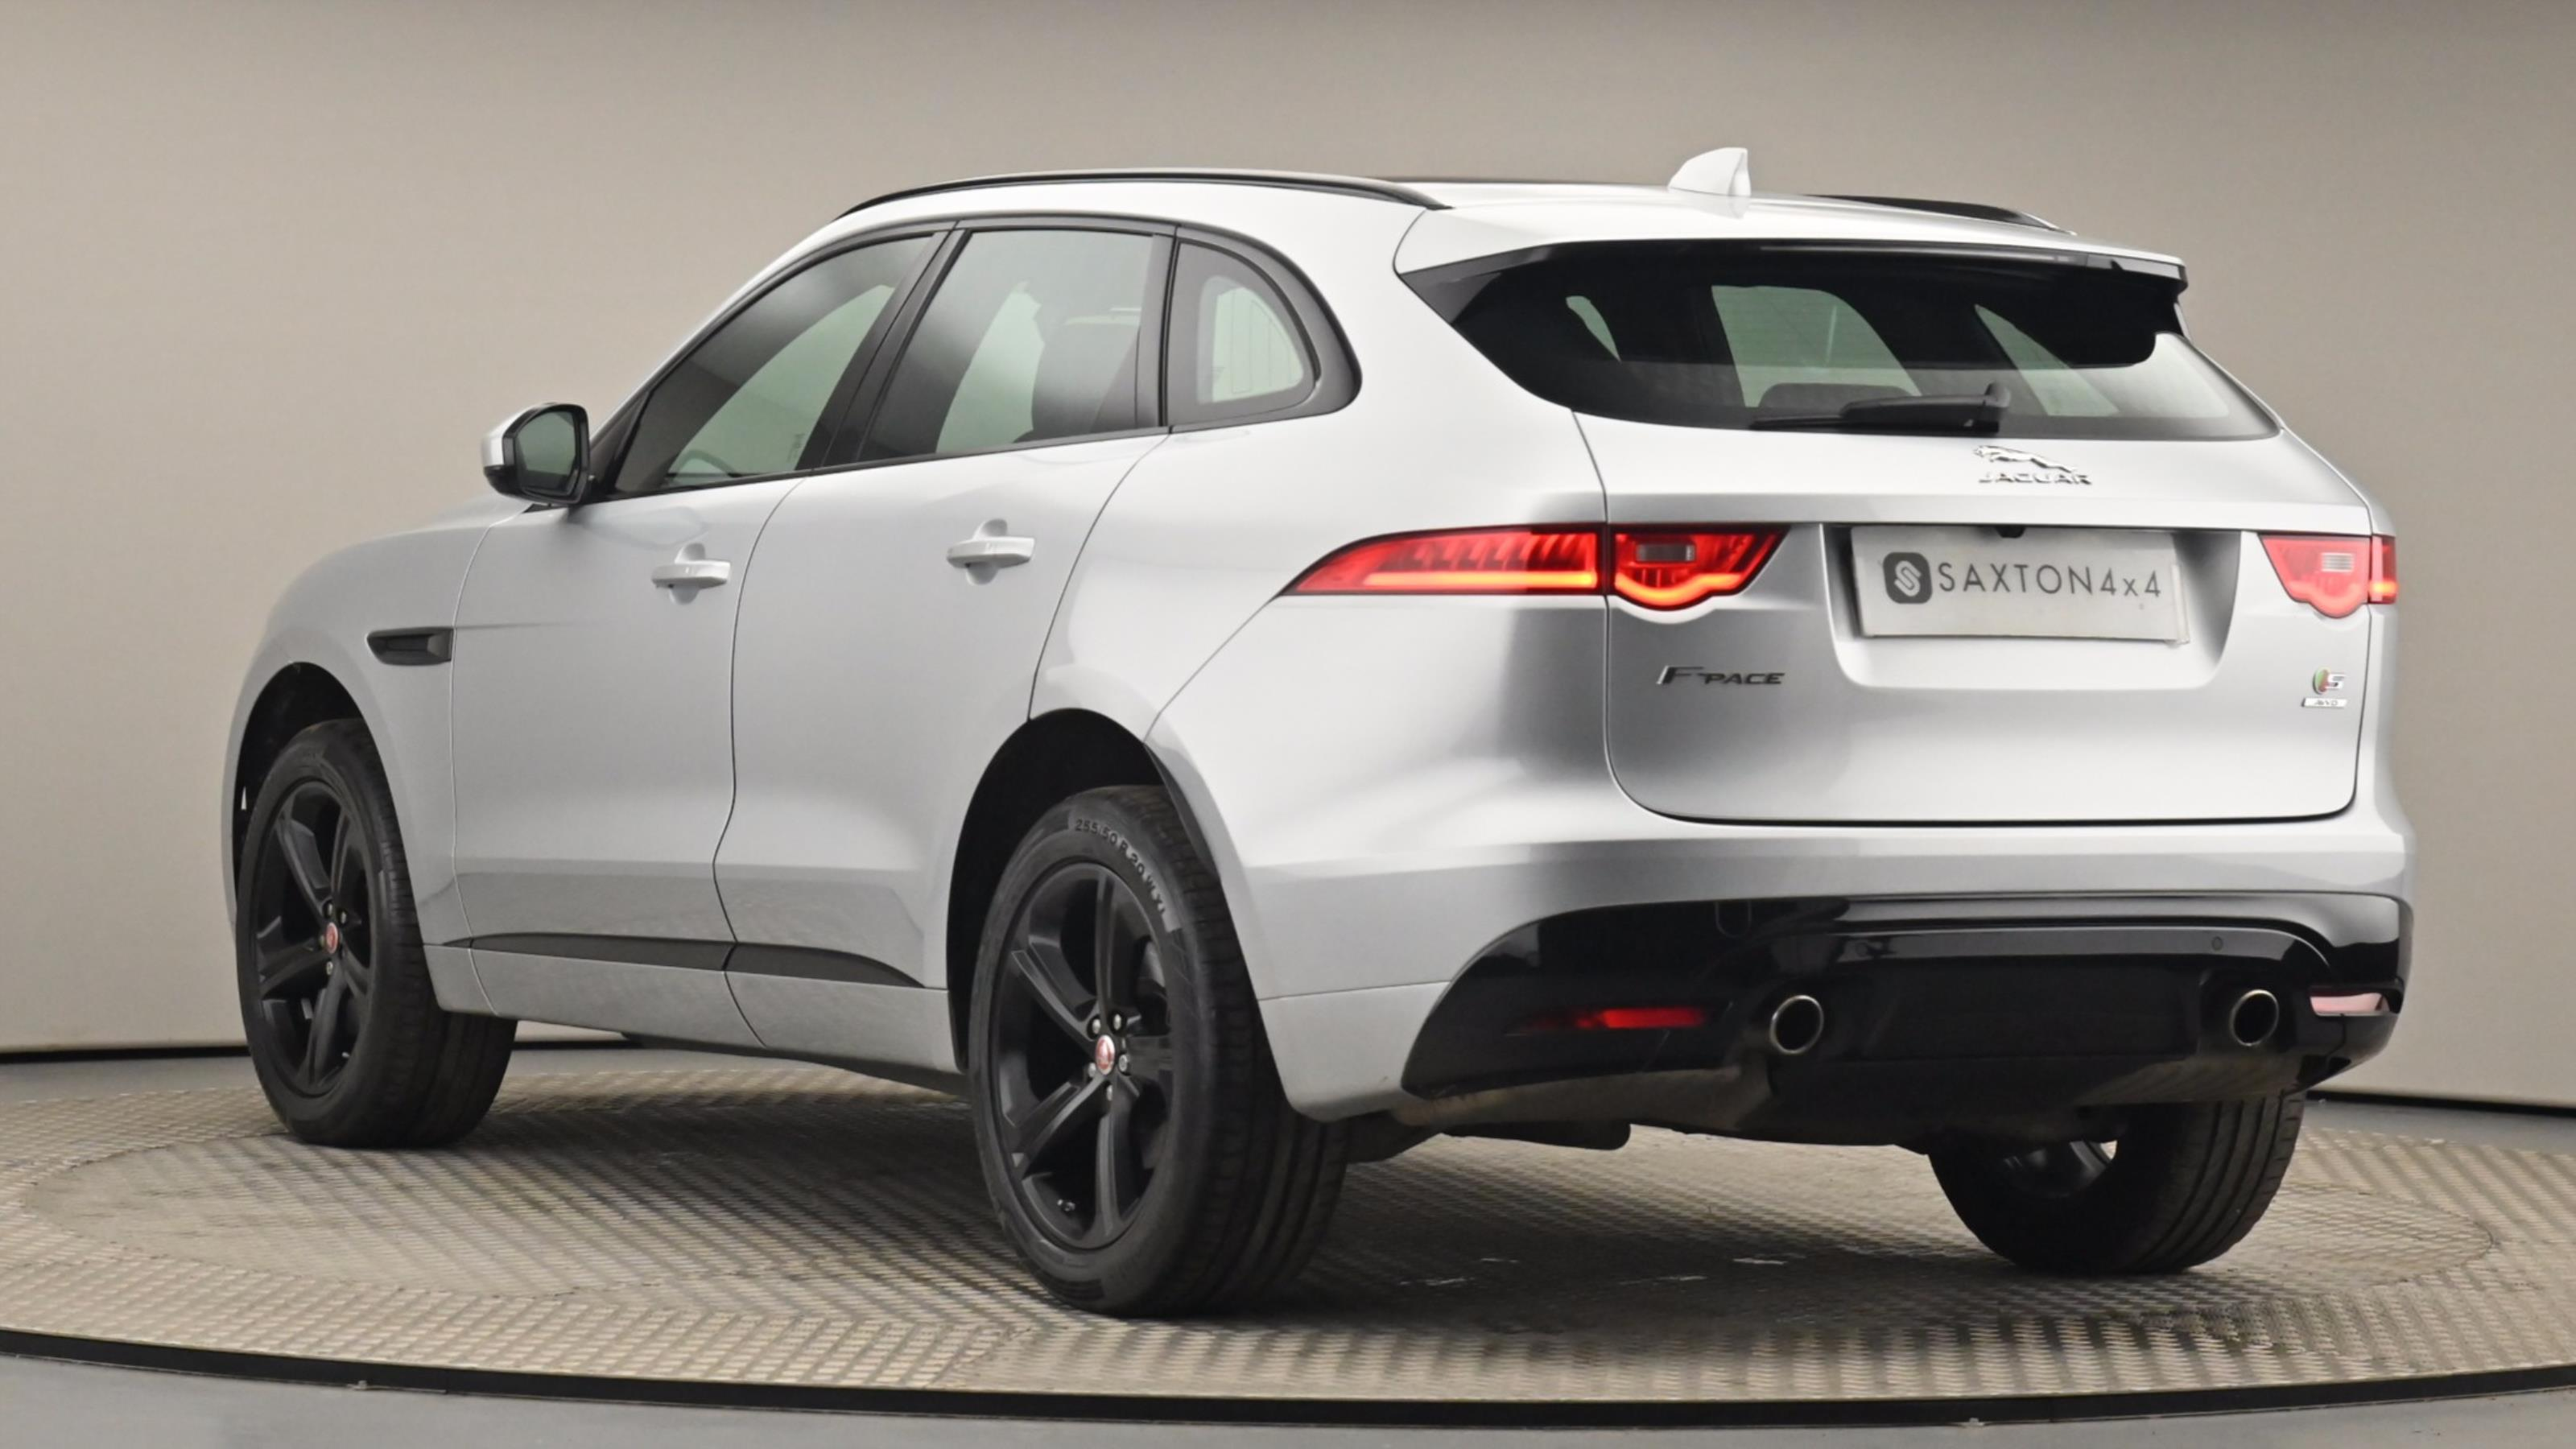 Used 2017 Jaguar F-PACE 3.0 Supercharged V6 S 5dr Auto AWD SILVER at Saxton4x4